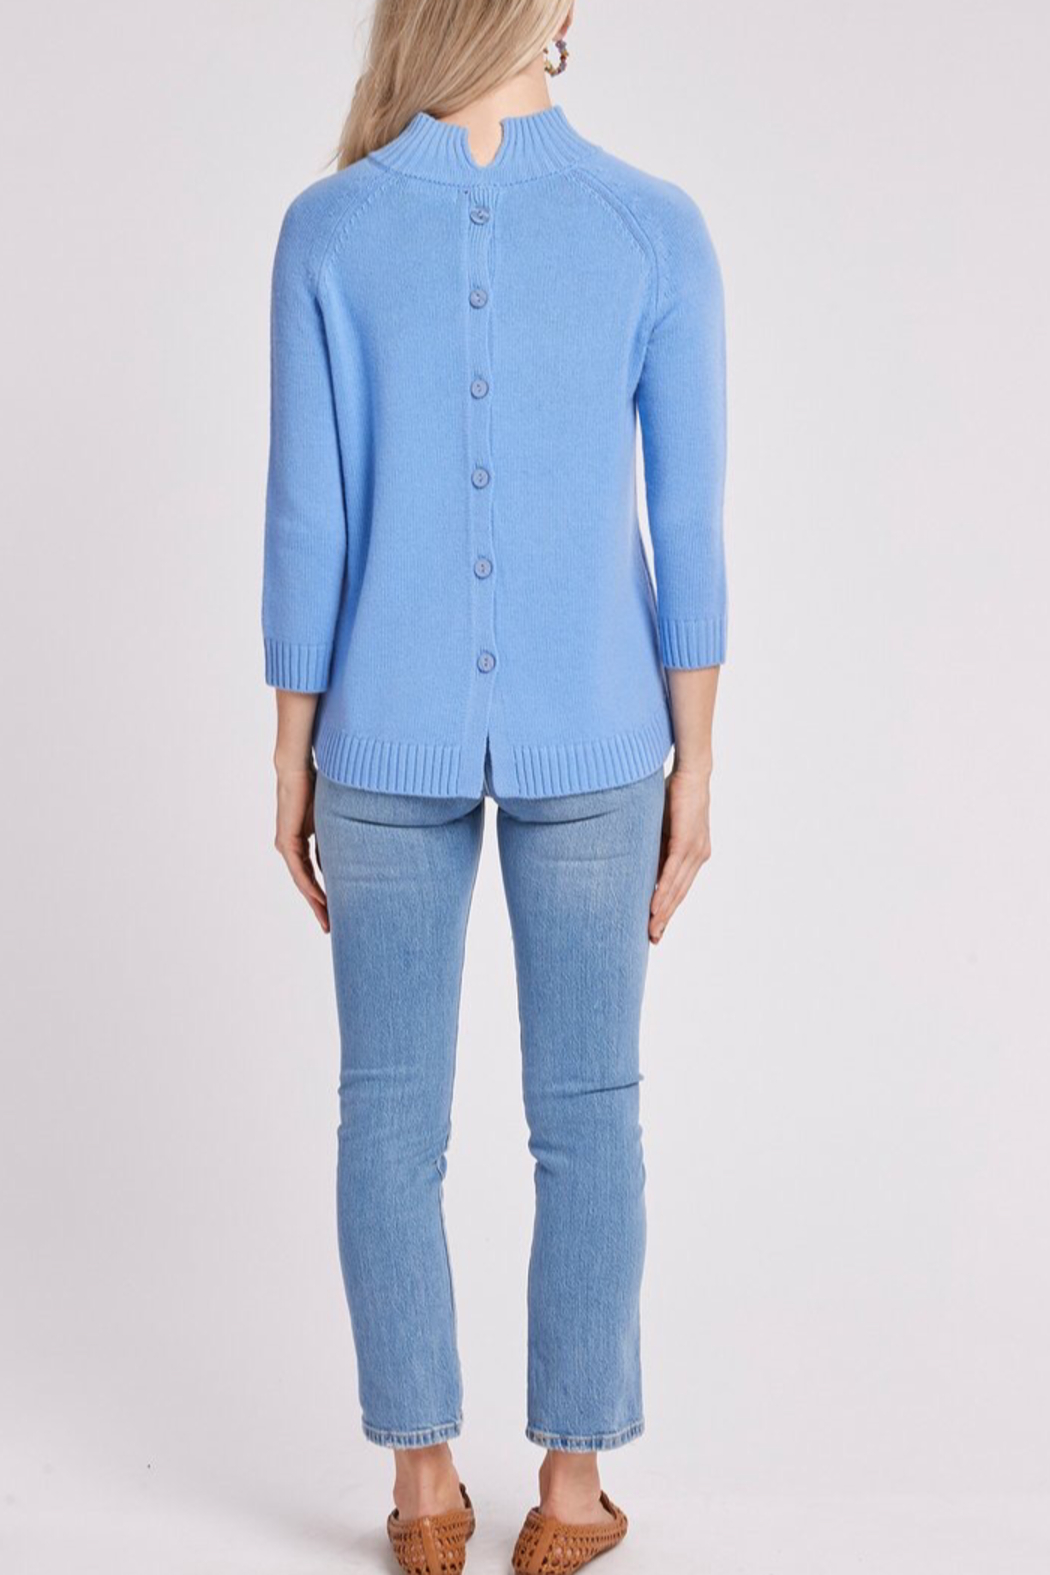 Tyler Boe Cashmere Mock Neck Sweater - Front Cropped Image